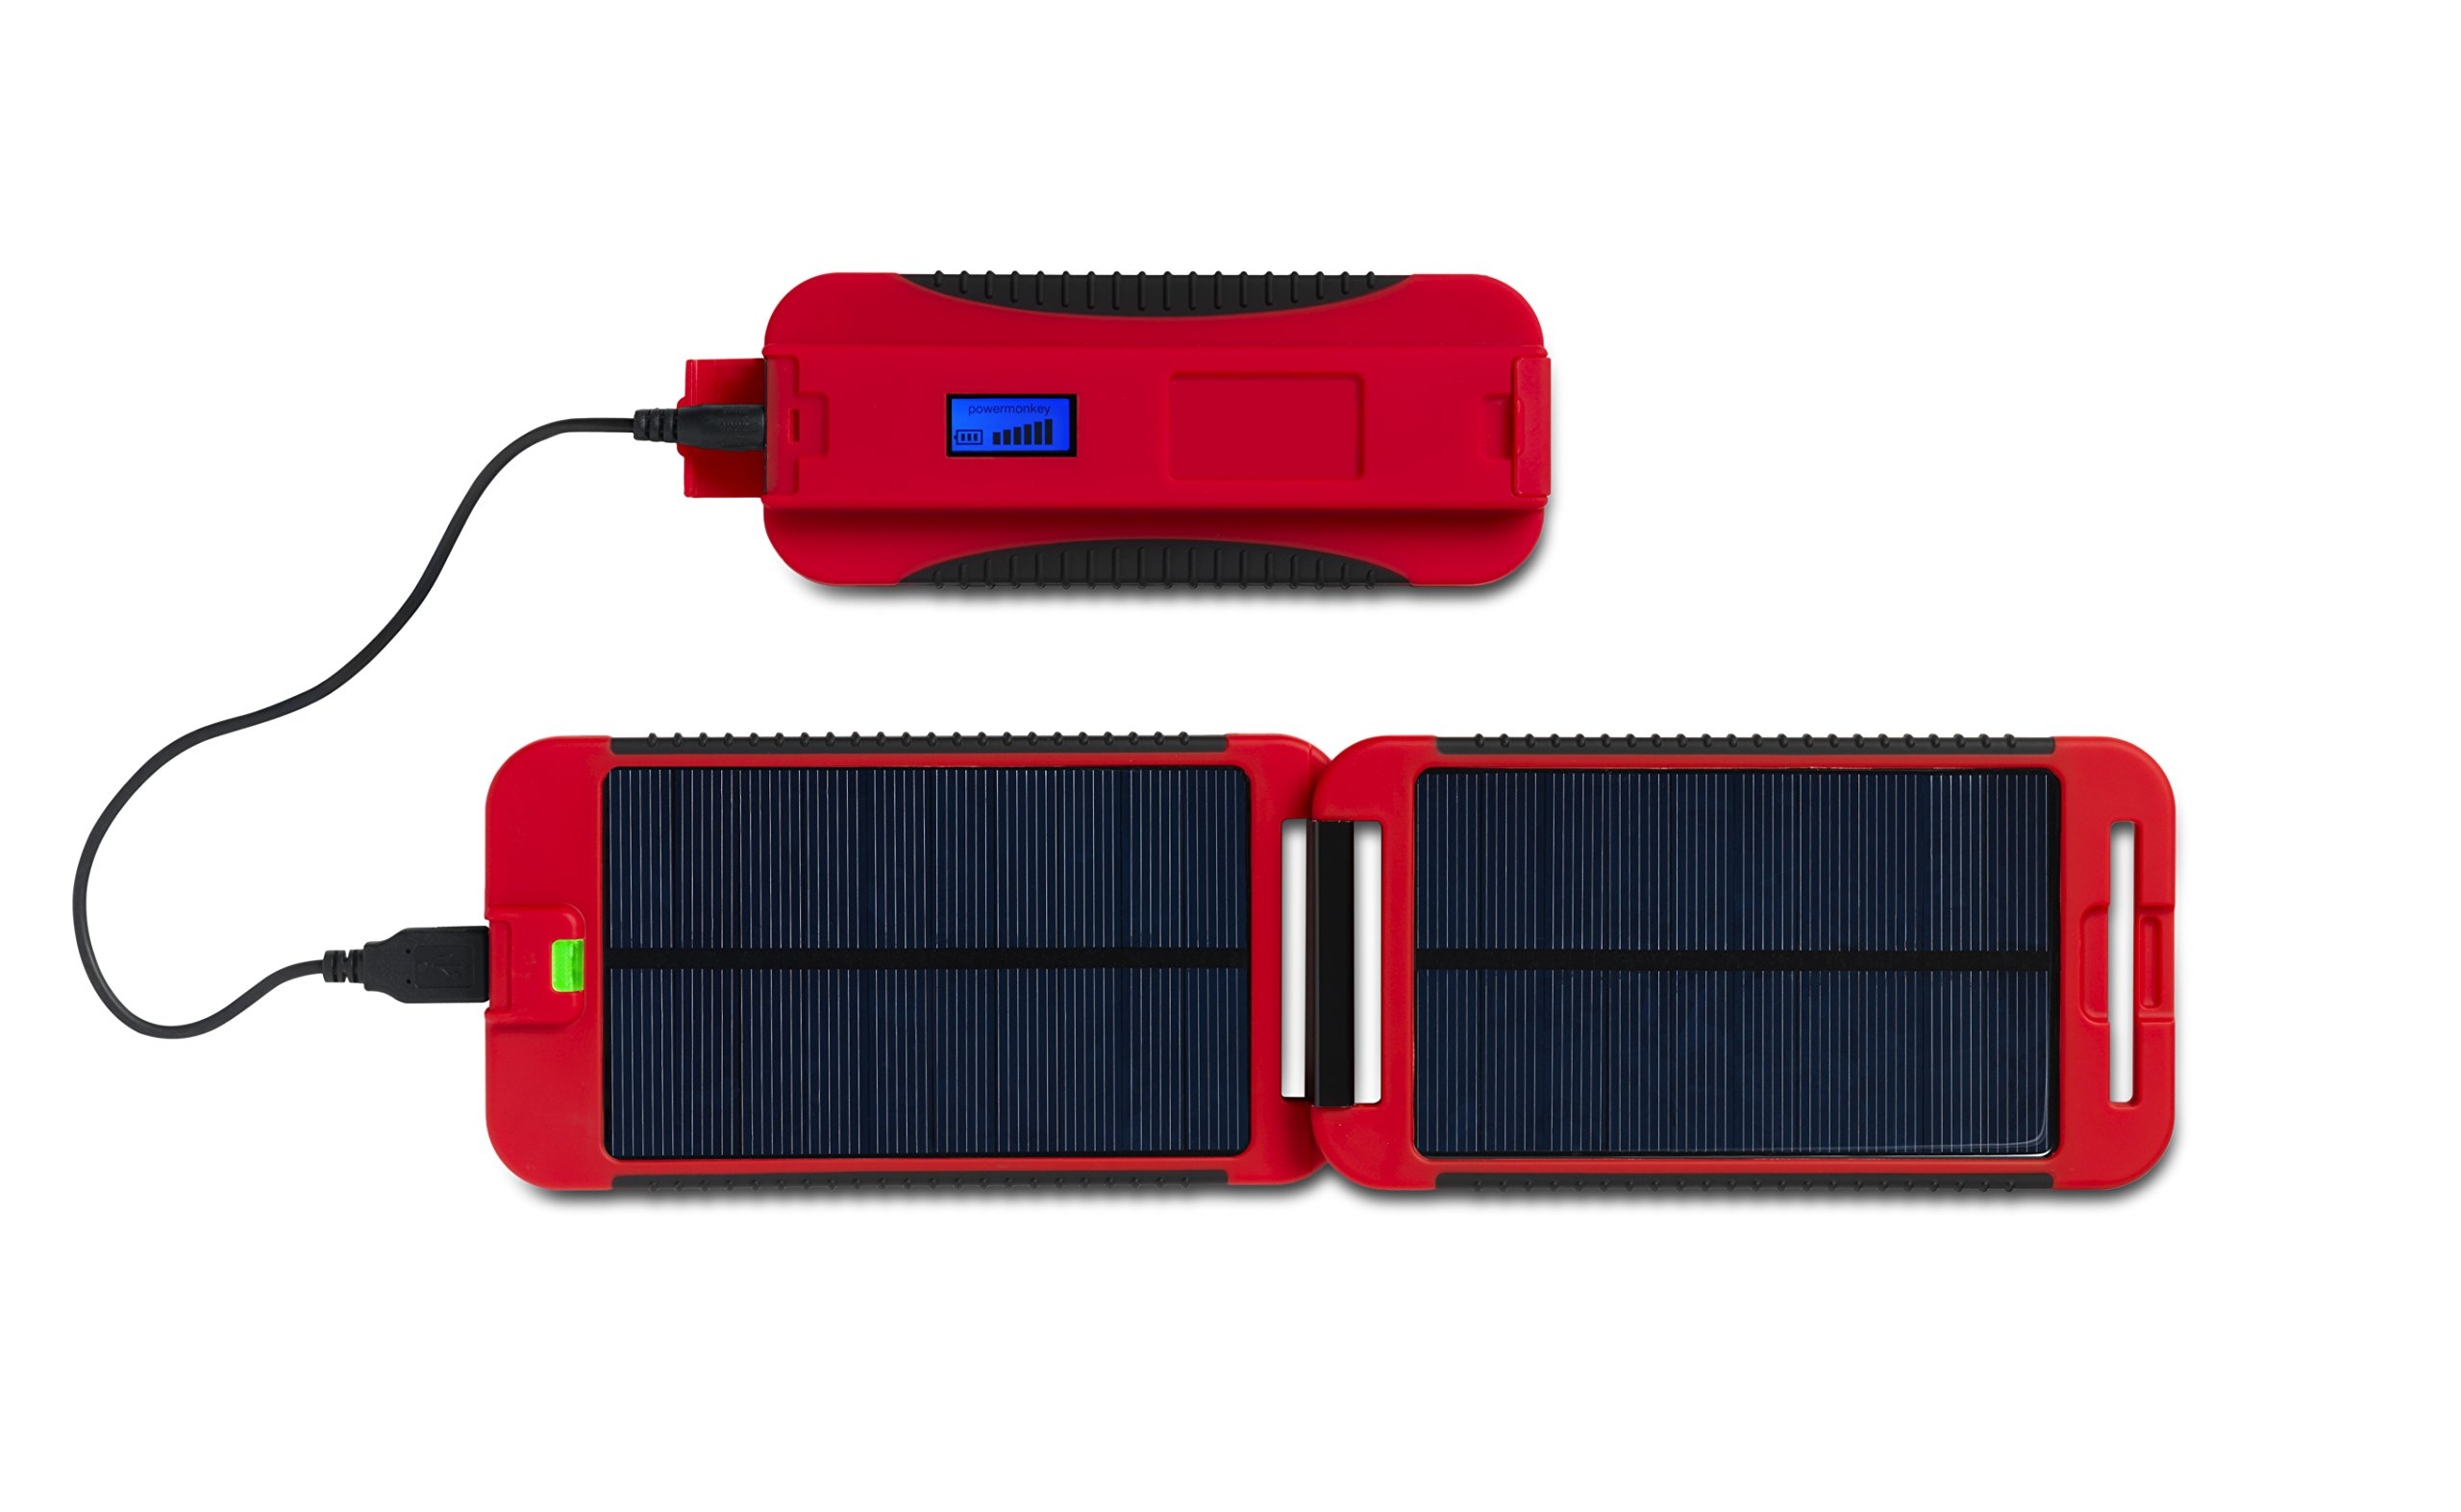 Exo-Science Powermonkey Extreme 5V and 12V Solar Portable Charger, Red by Exo-Science (Image #2)